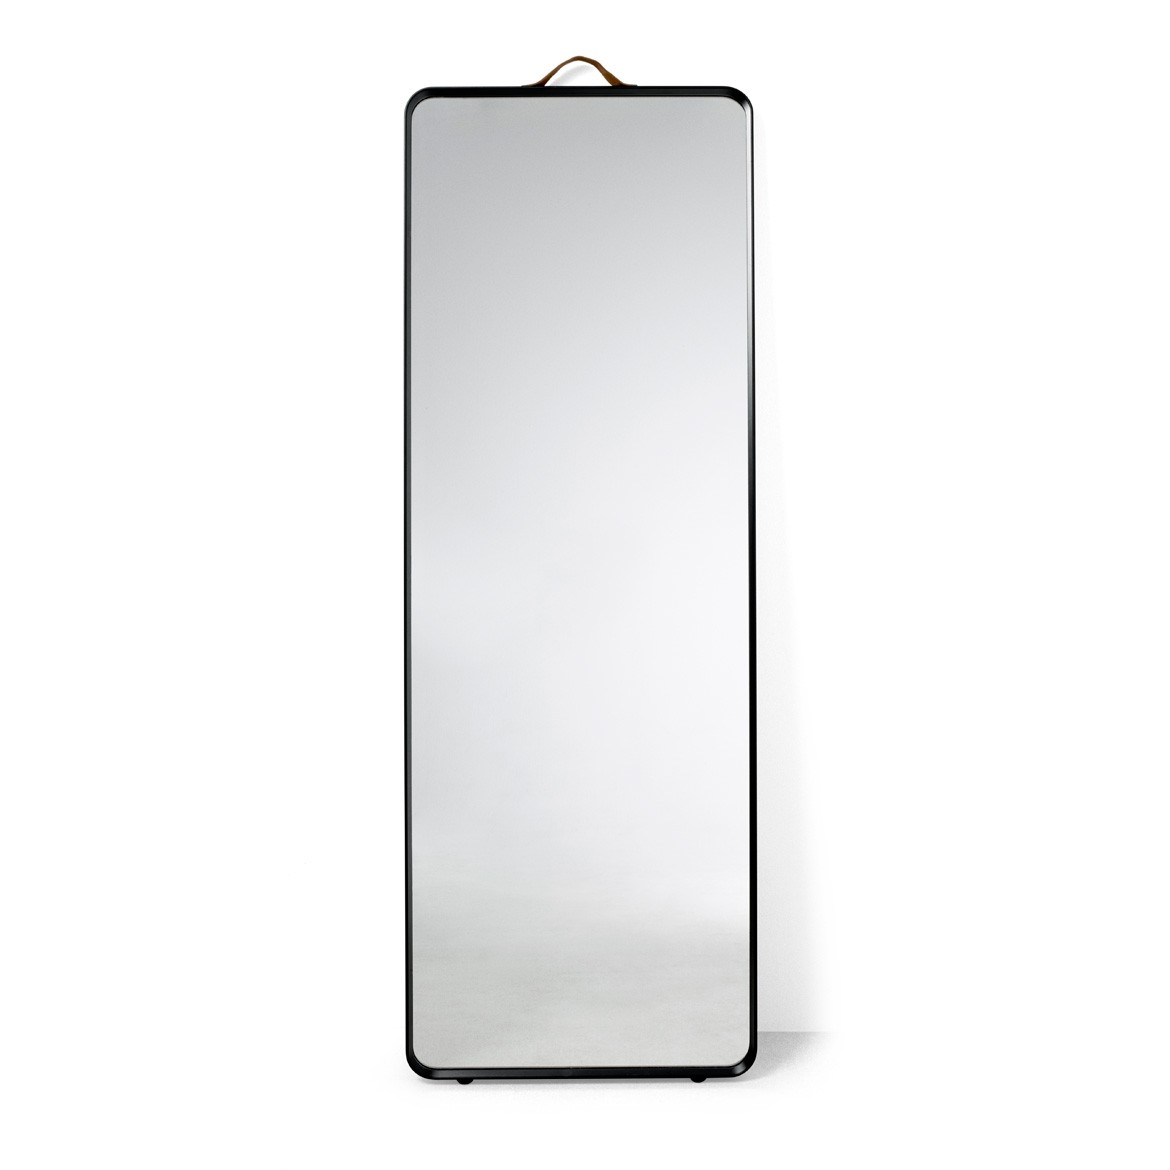 Rectangular Floor Standing Mirror Black Aria Our Bedroom Regarding Black Floor Standing Mirror (Image 13 of 15)